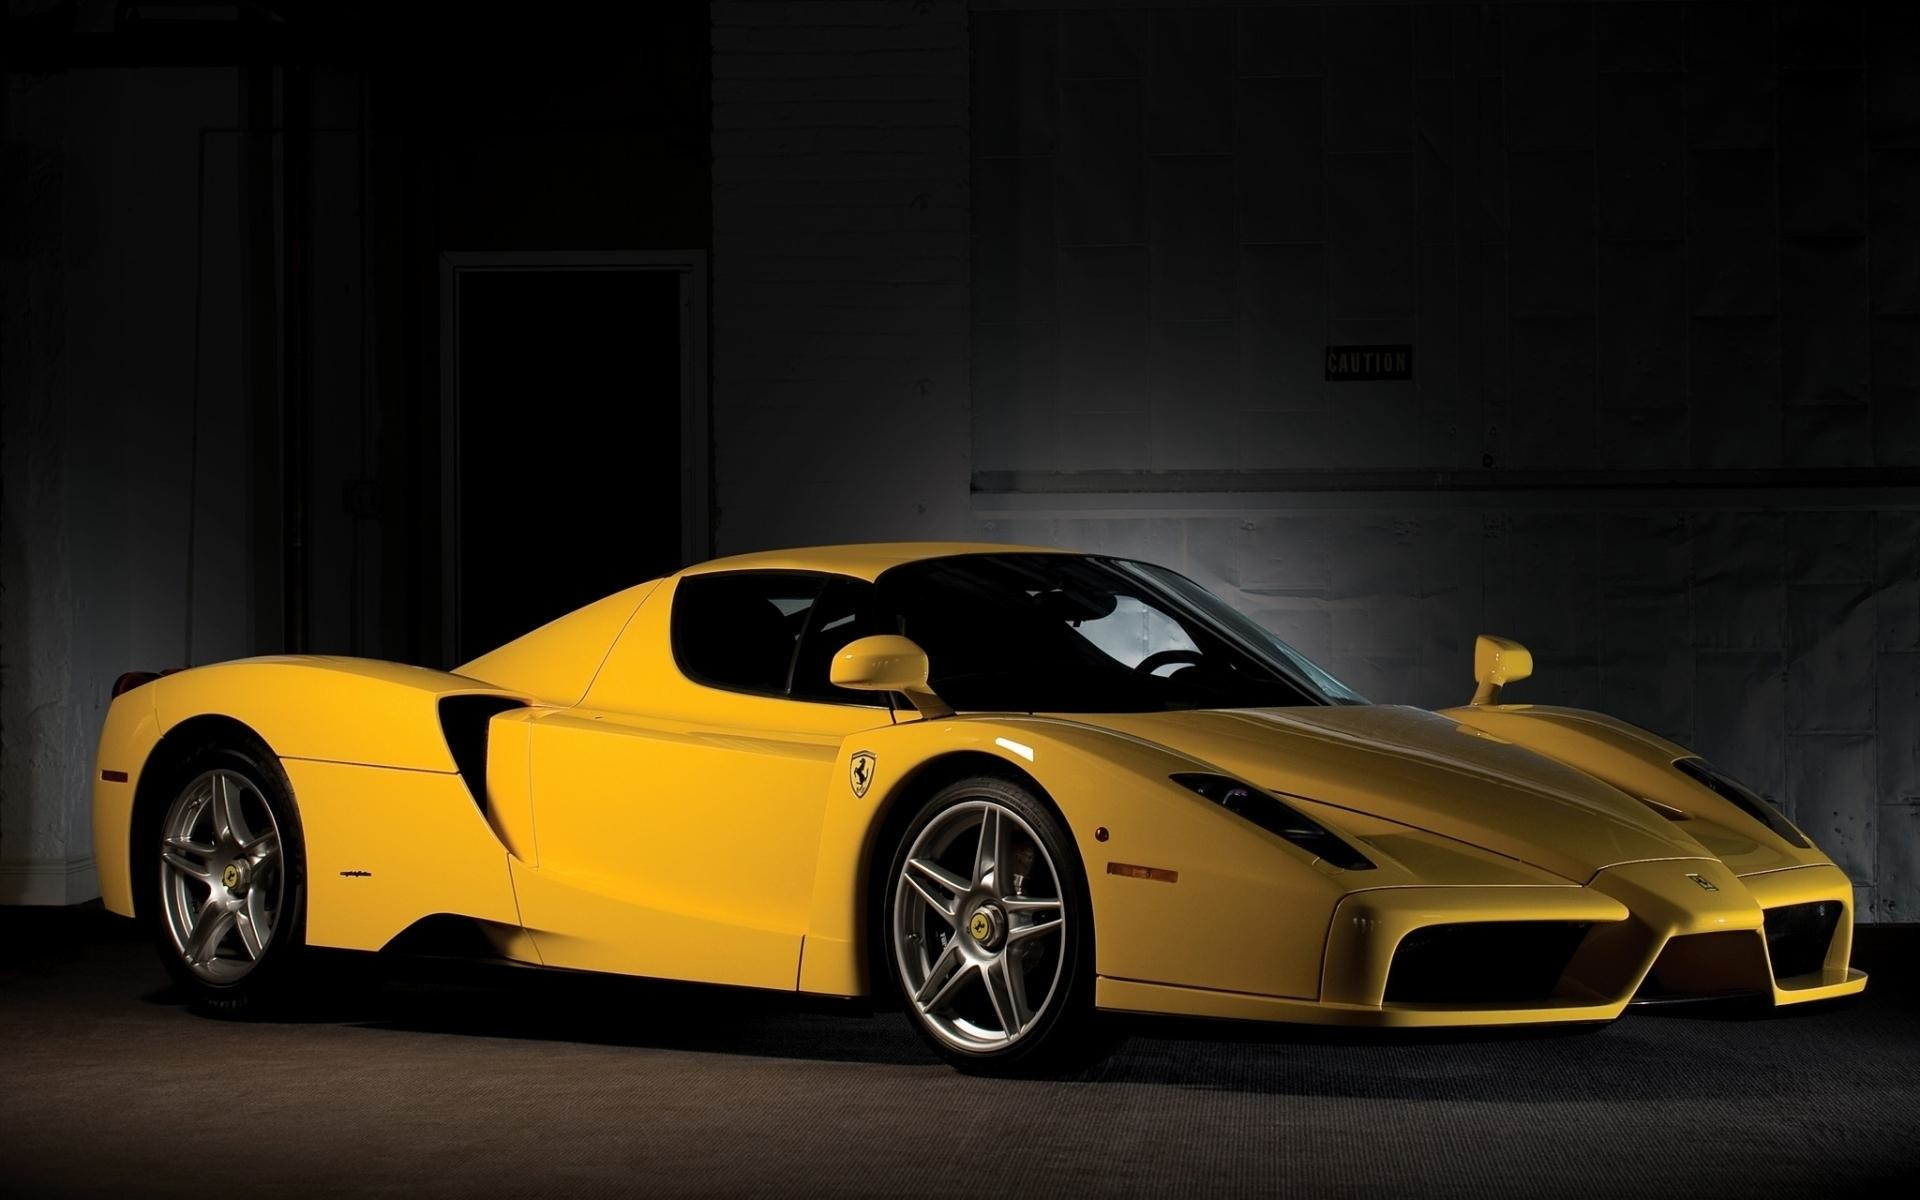 1920x1200 Widescreen Black Ferrari Enzo Wallpapers Ferrari Enzo 1920 × 1200 Wallpapers